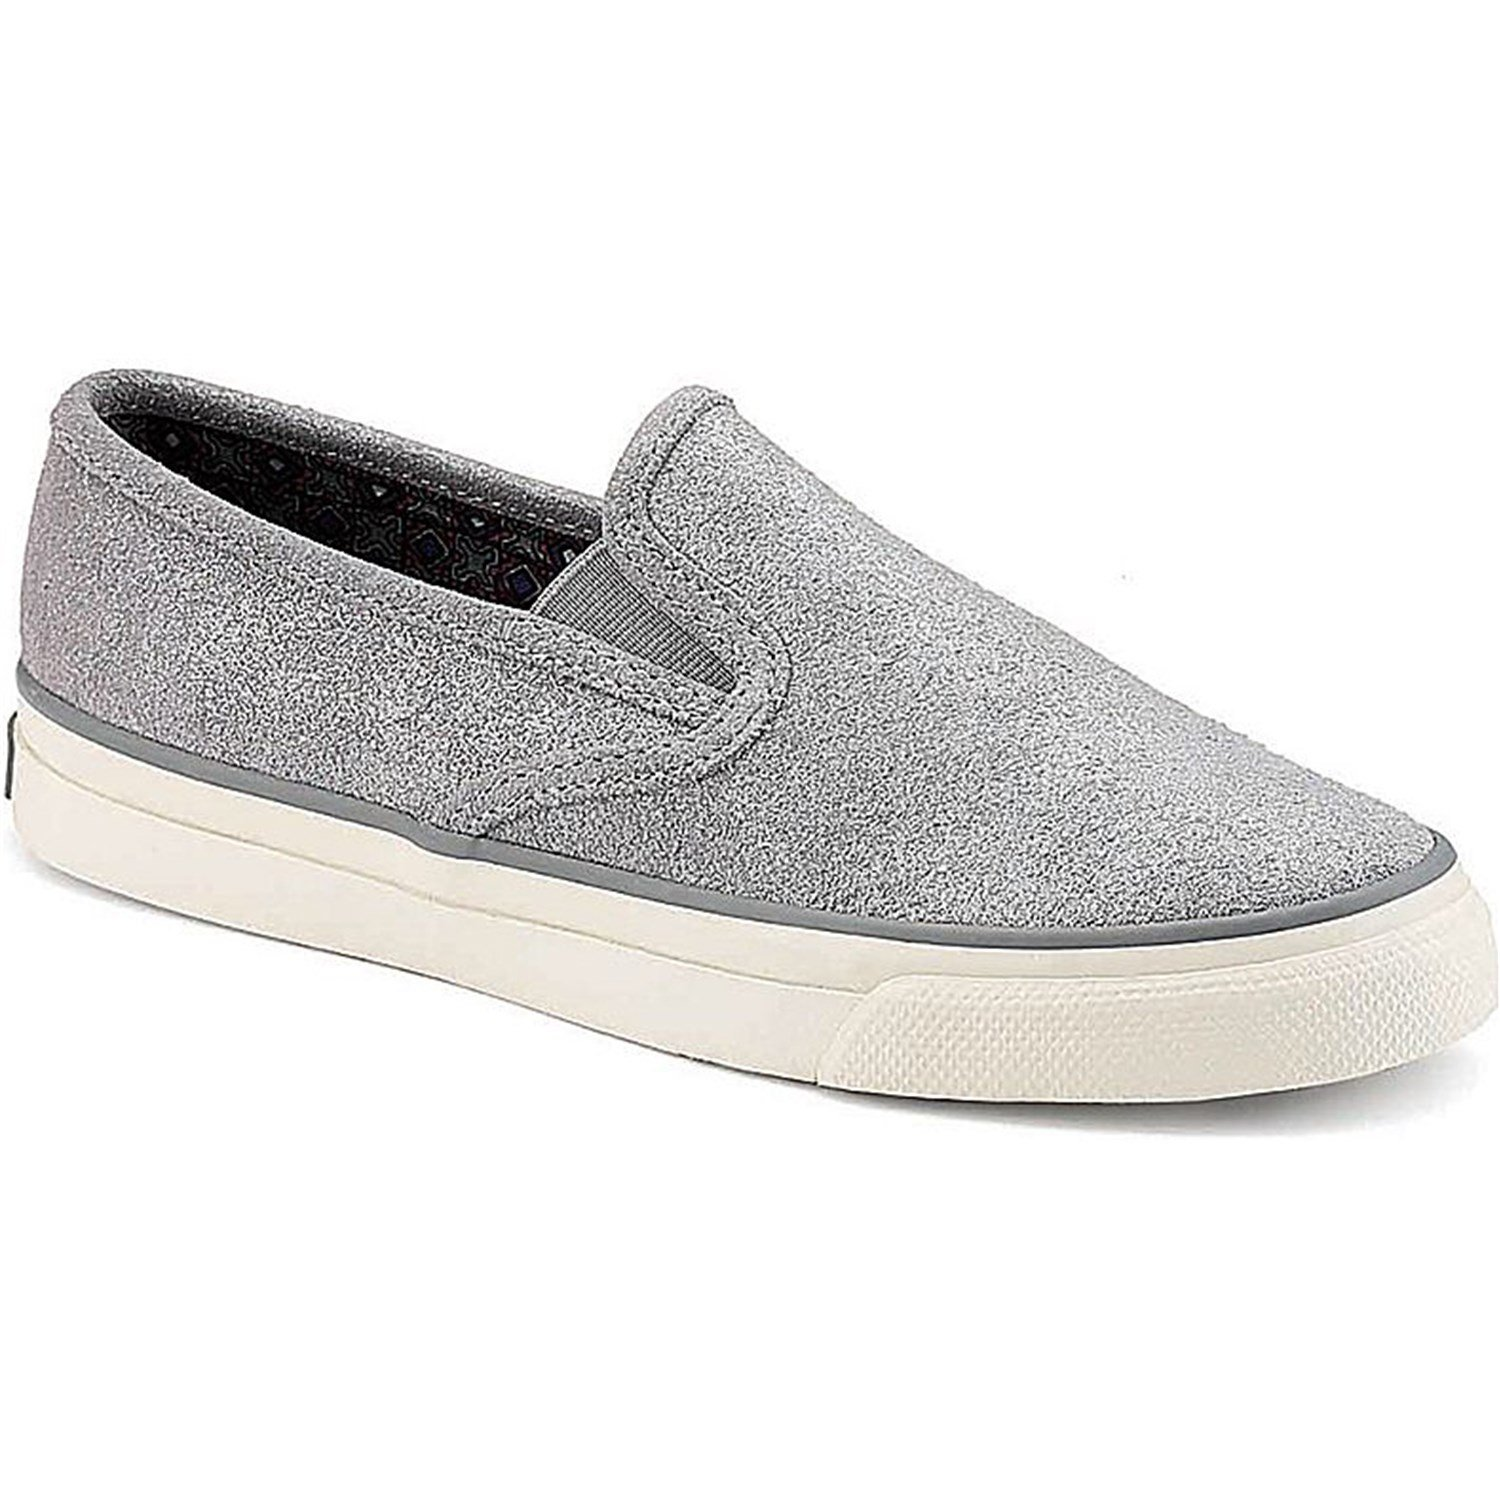 Free Shipping on Many Items! Shop from the world's largest selection and best deals for Loafers Slip - on Shoes for Girls. Shop with confidence on eBay!